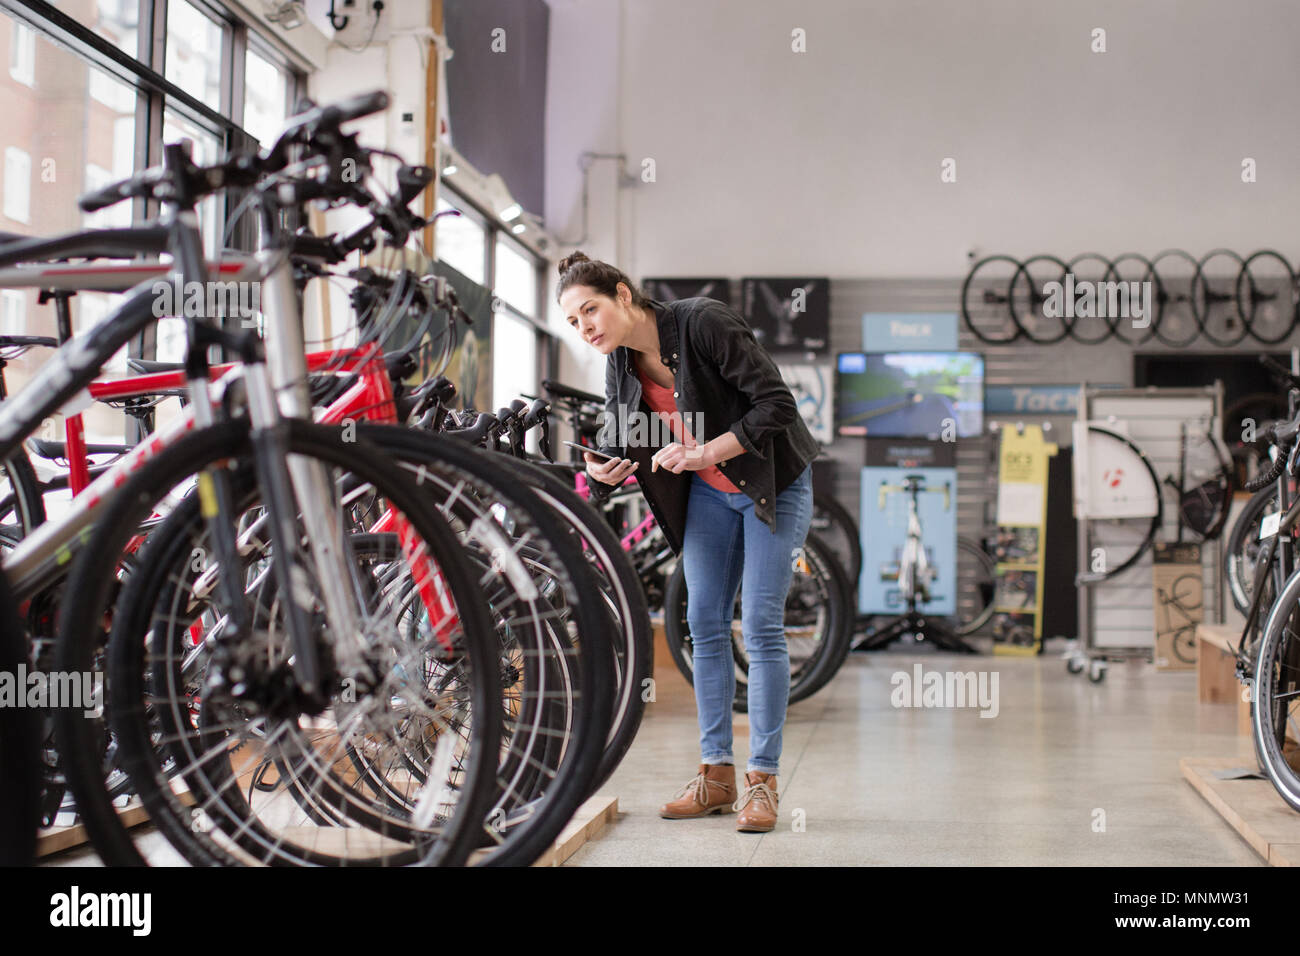 A Bike Store Small Business Owner Stock Taking In A Bike Store Stock Photo